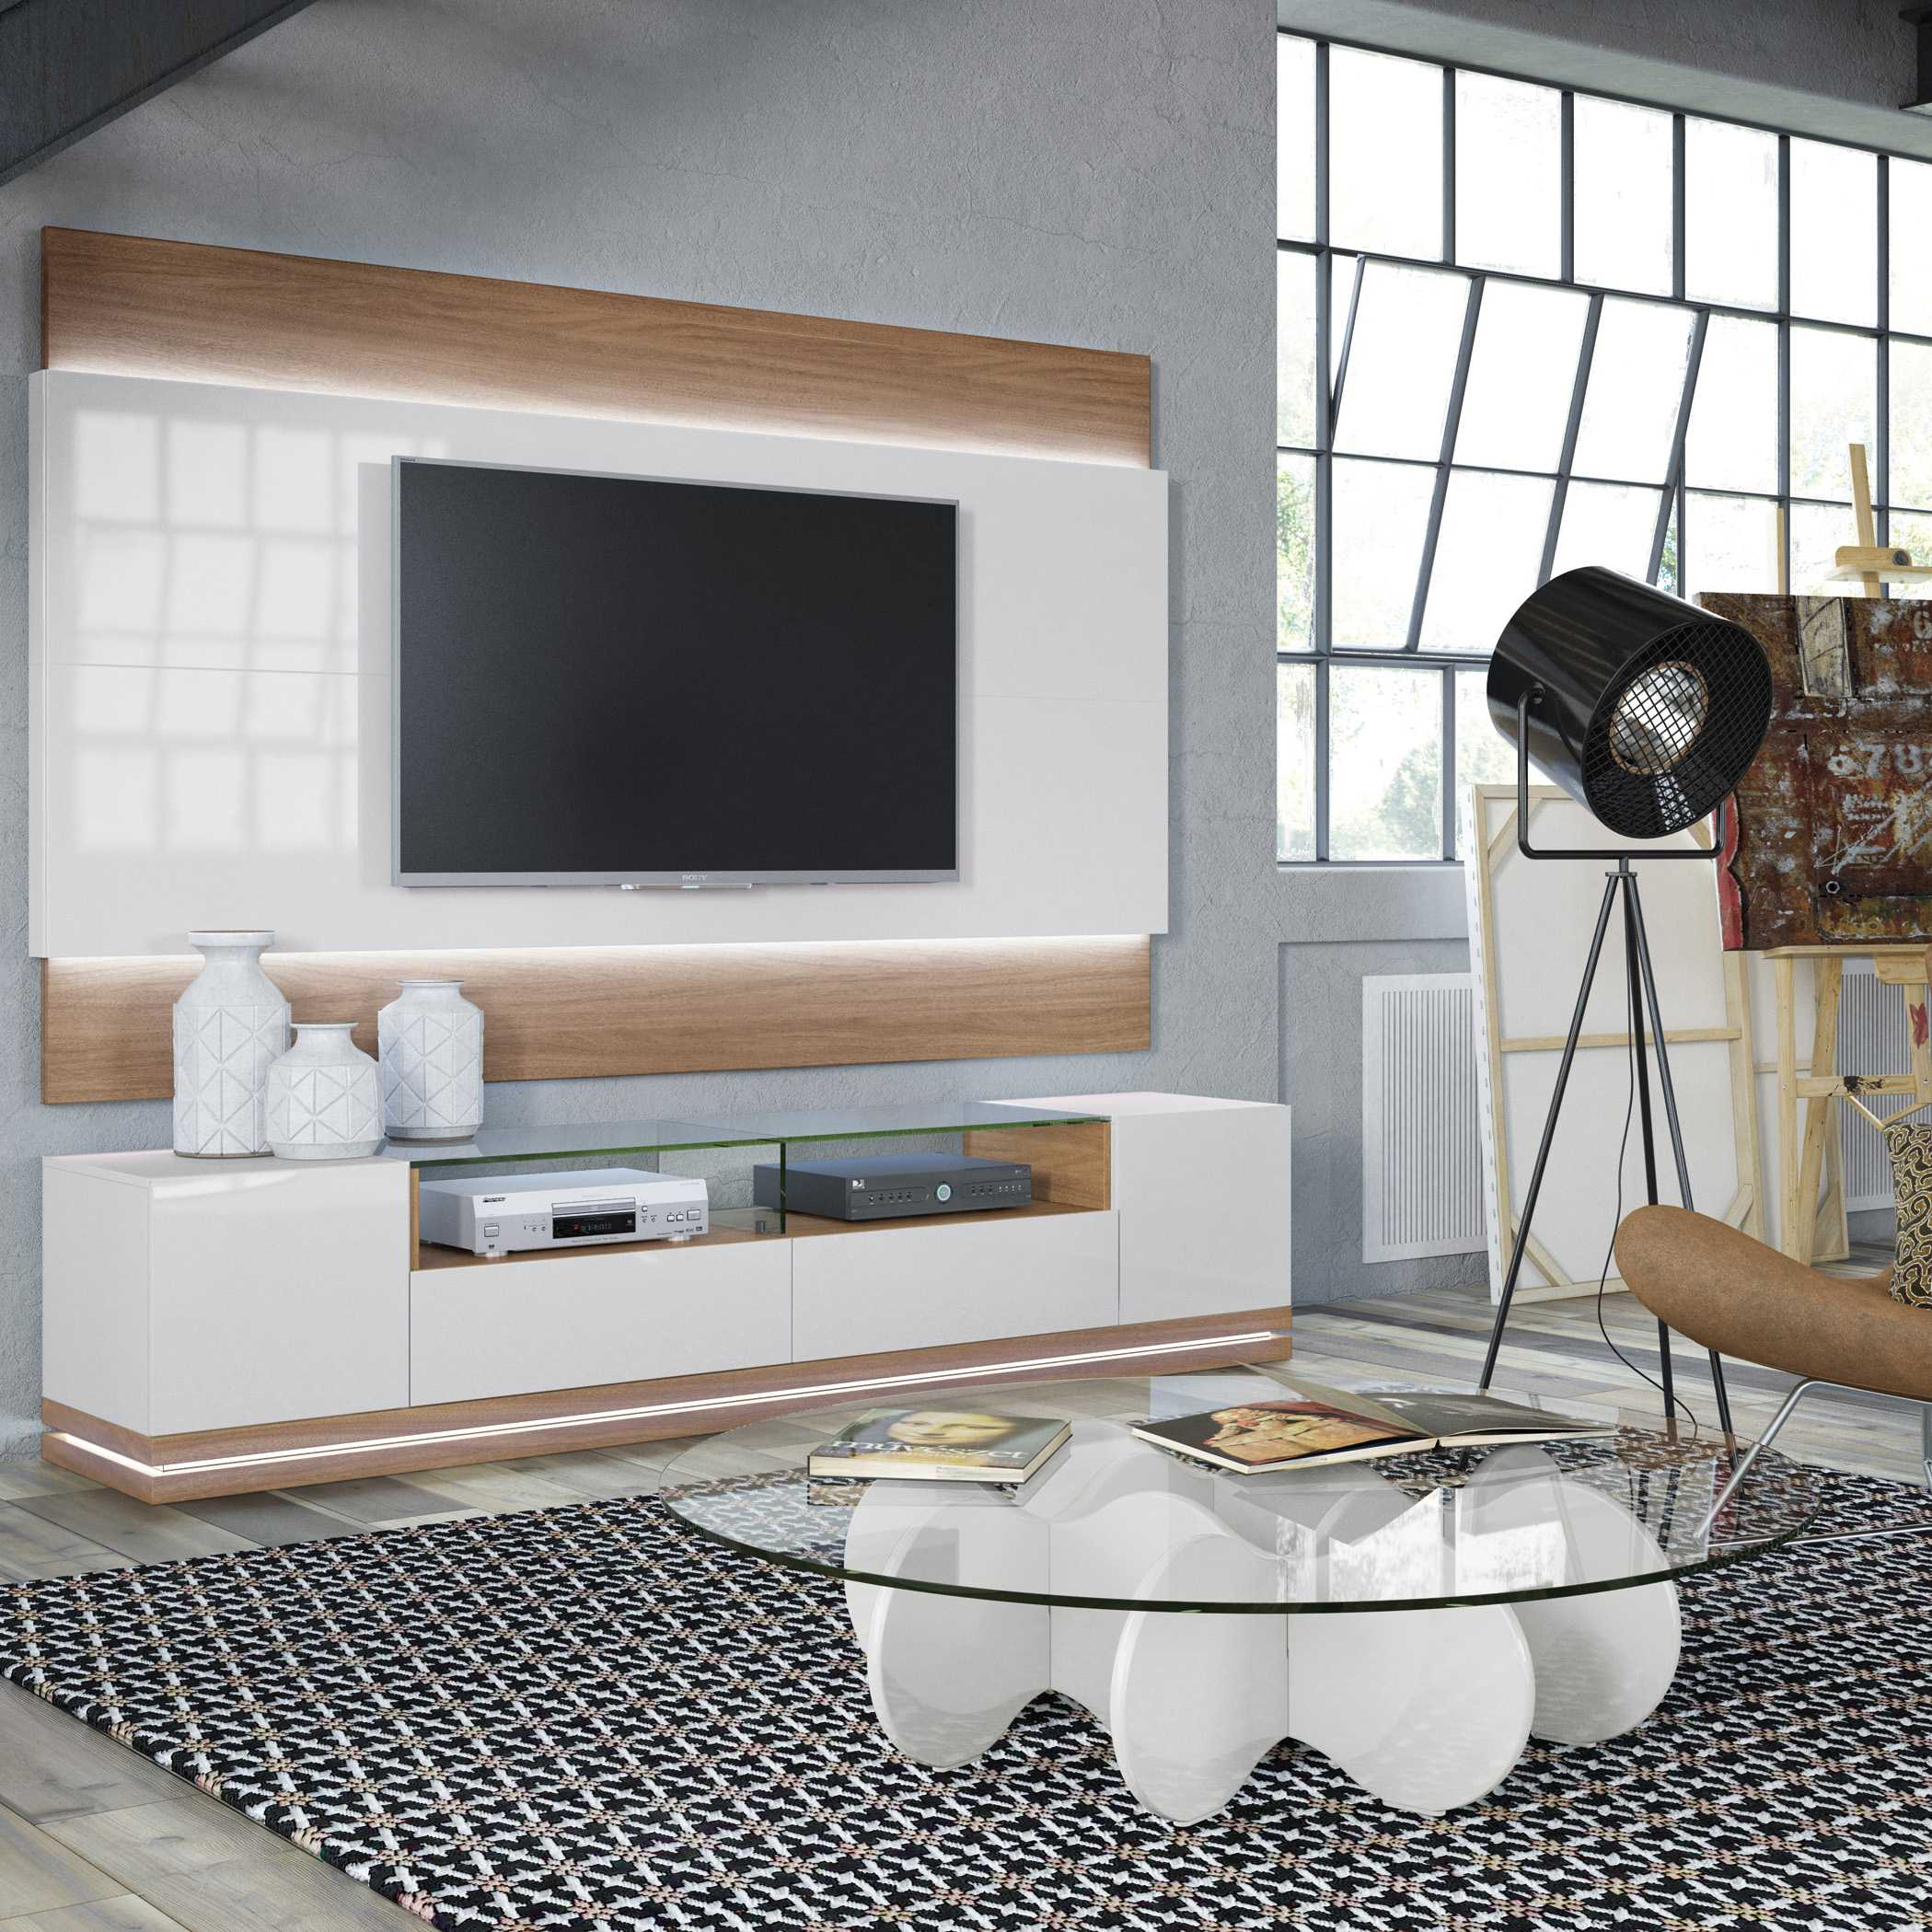 Off White Tv Stand And Floating Wall Tv Panel With Led Lights